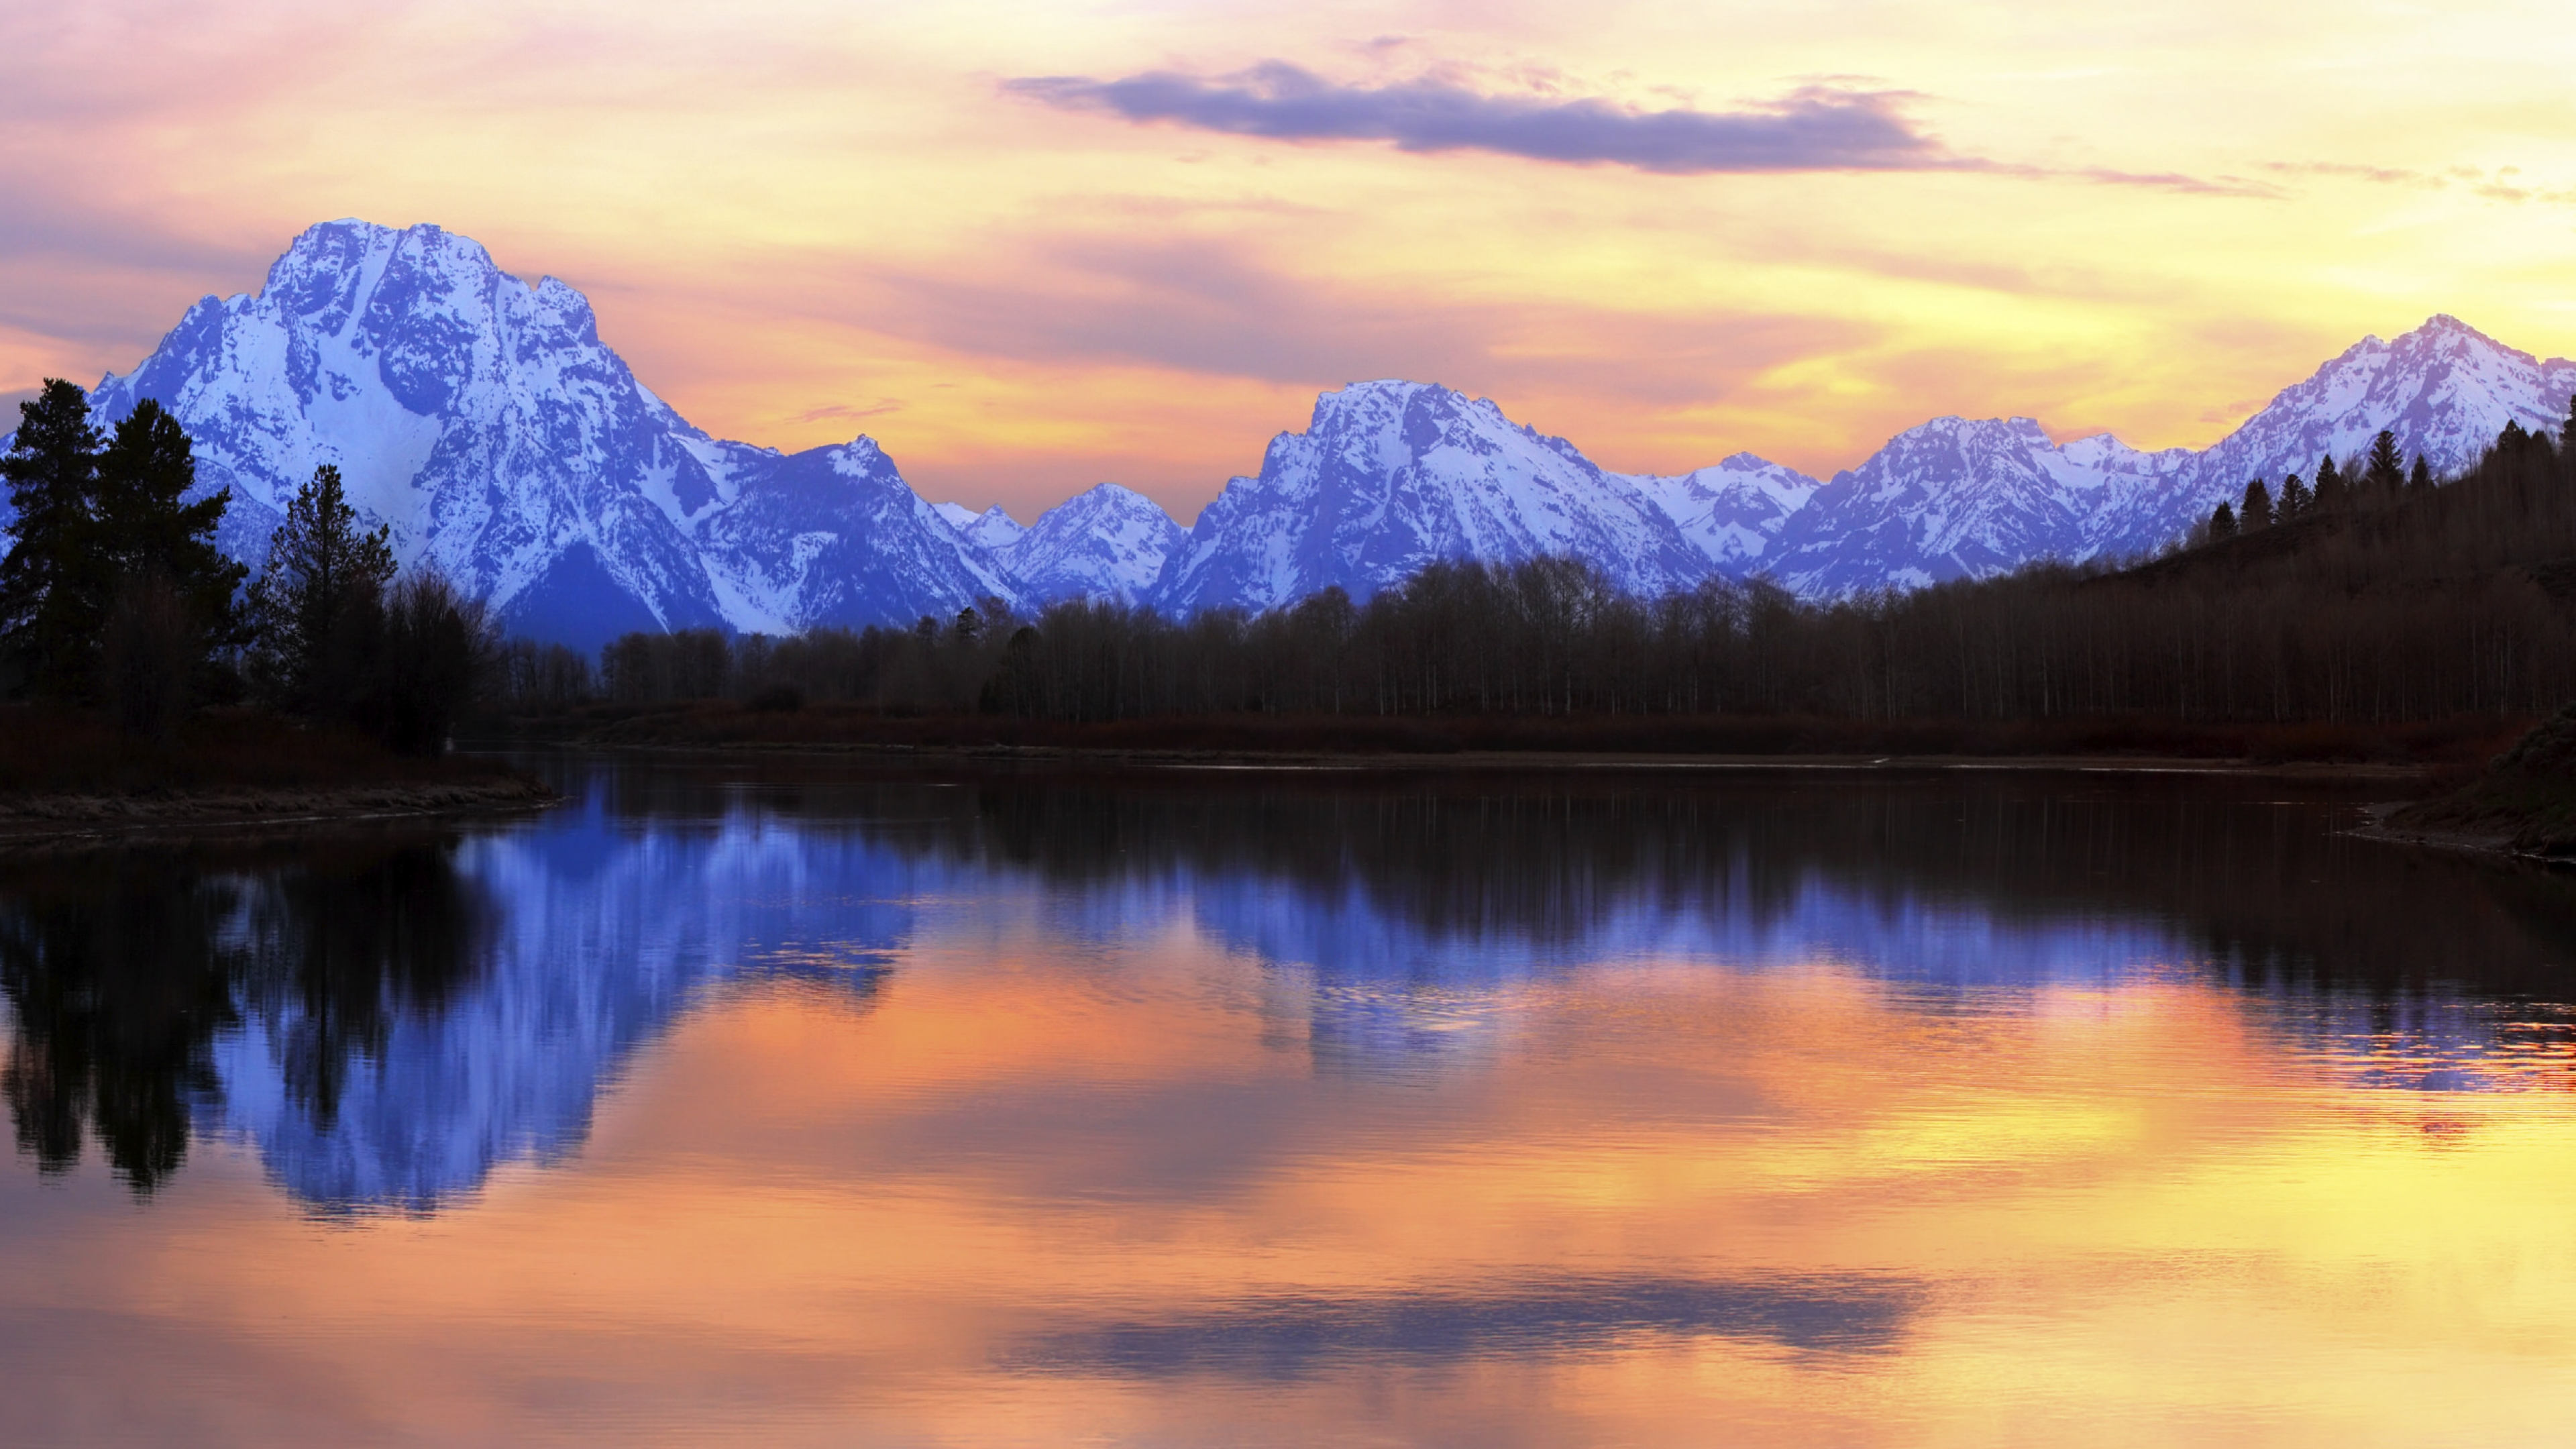 An orange, yellow, and purple sky reflected in a still lake with the snow-covered Grand Teton mountains in the background